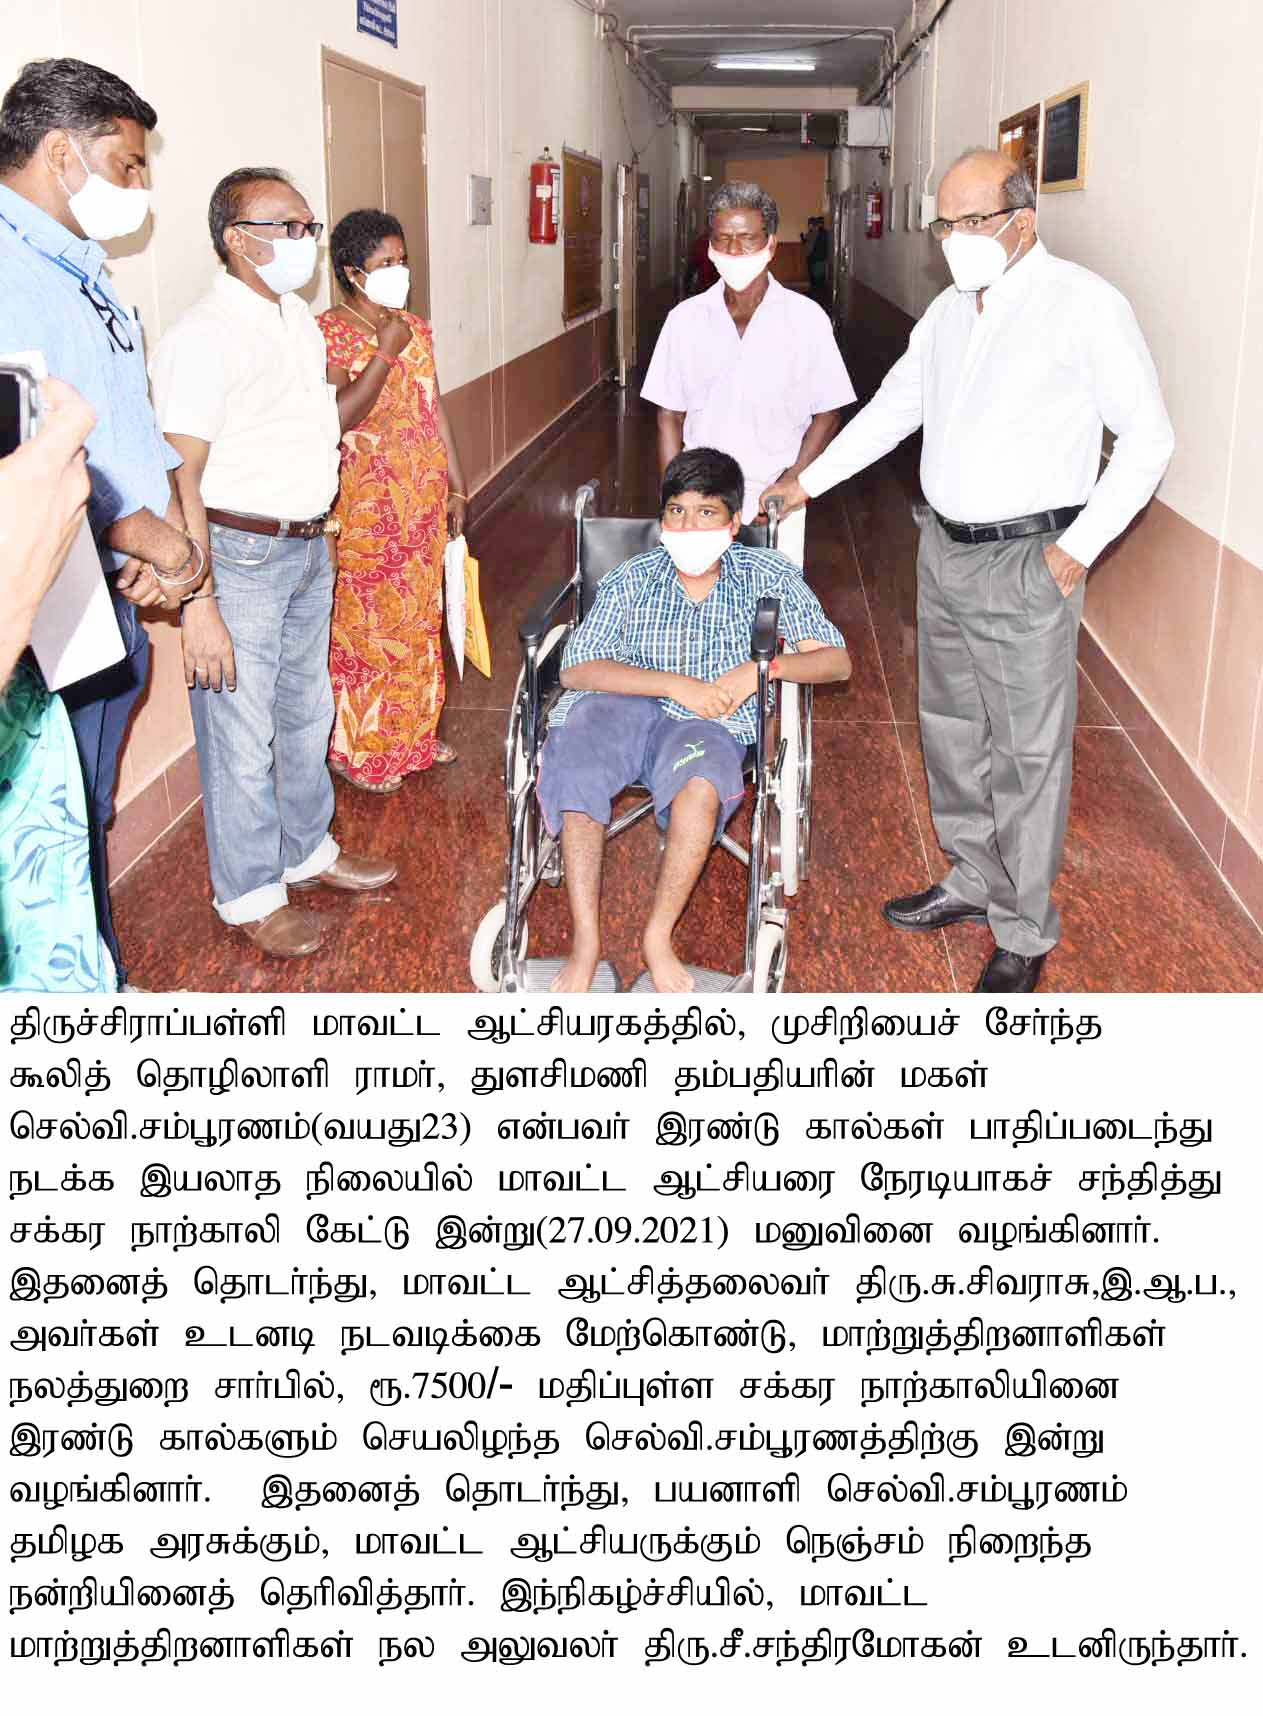 District Collector Provided Wheel Chairs tos beneficiary on 27.09.2021